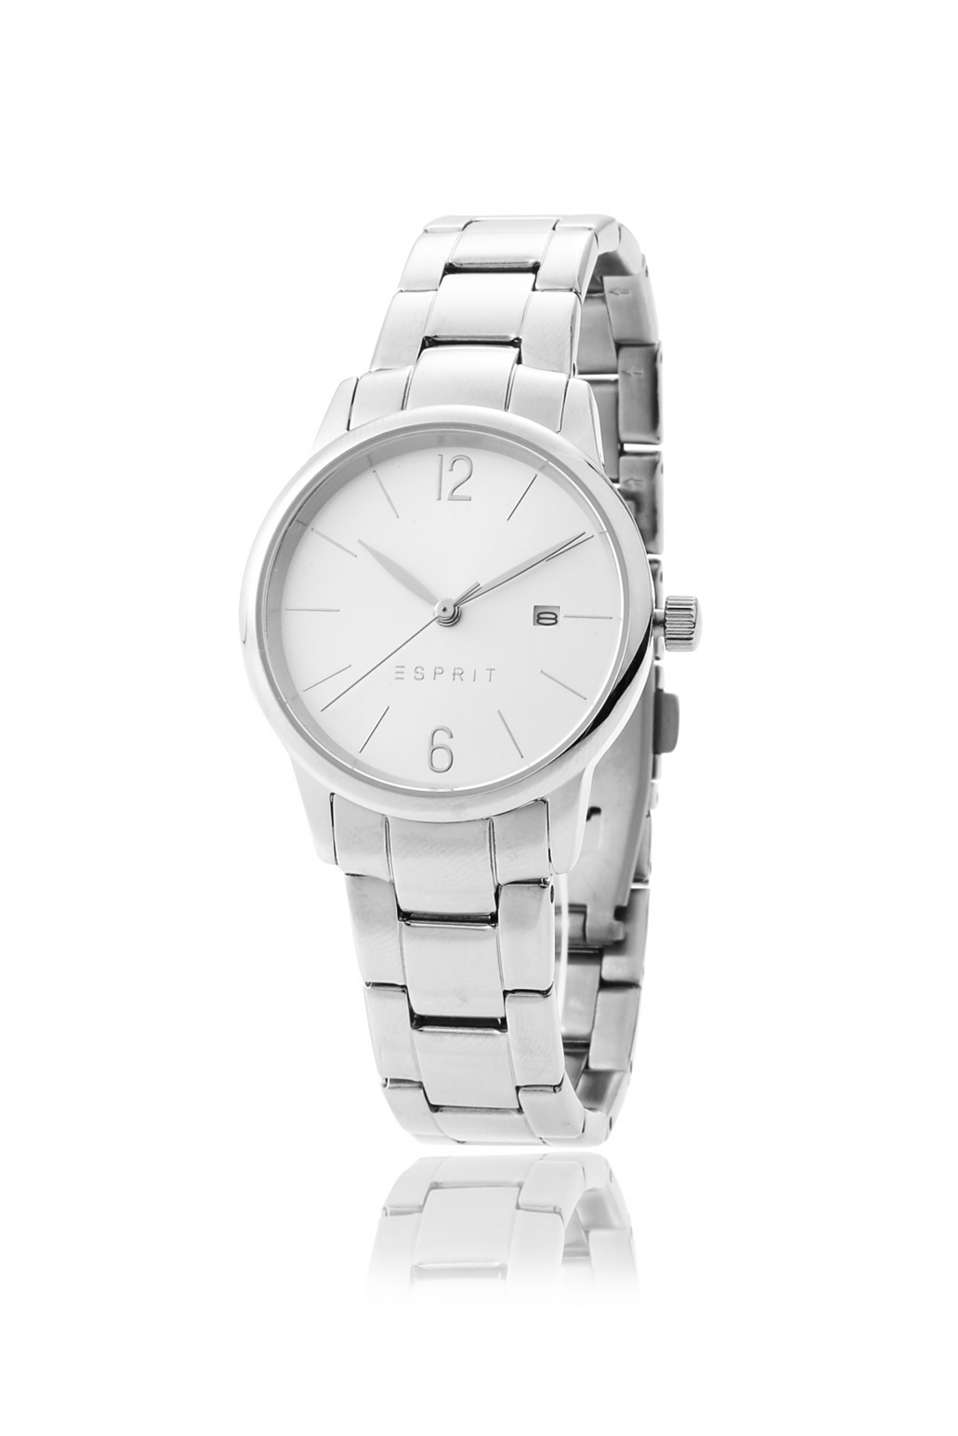 Esprit - stainless-steel watch, date and metal strap